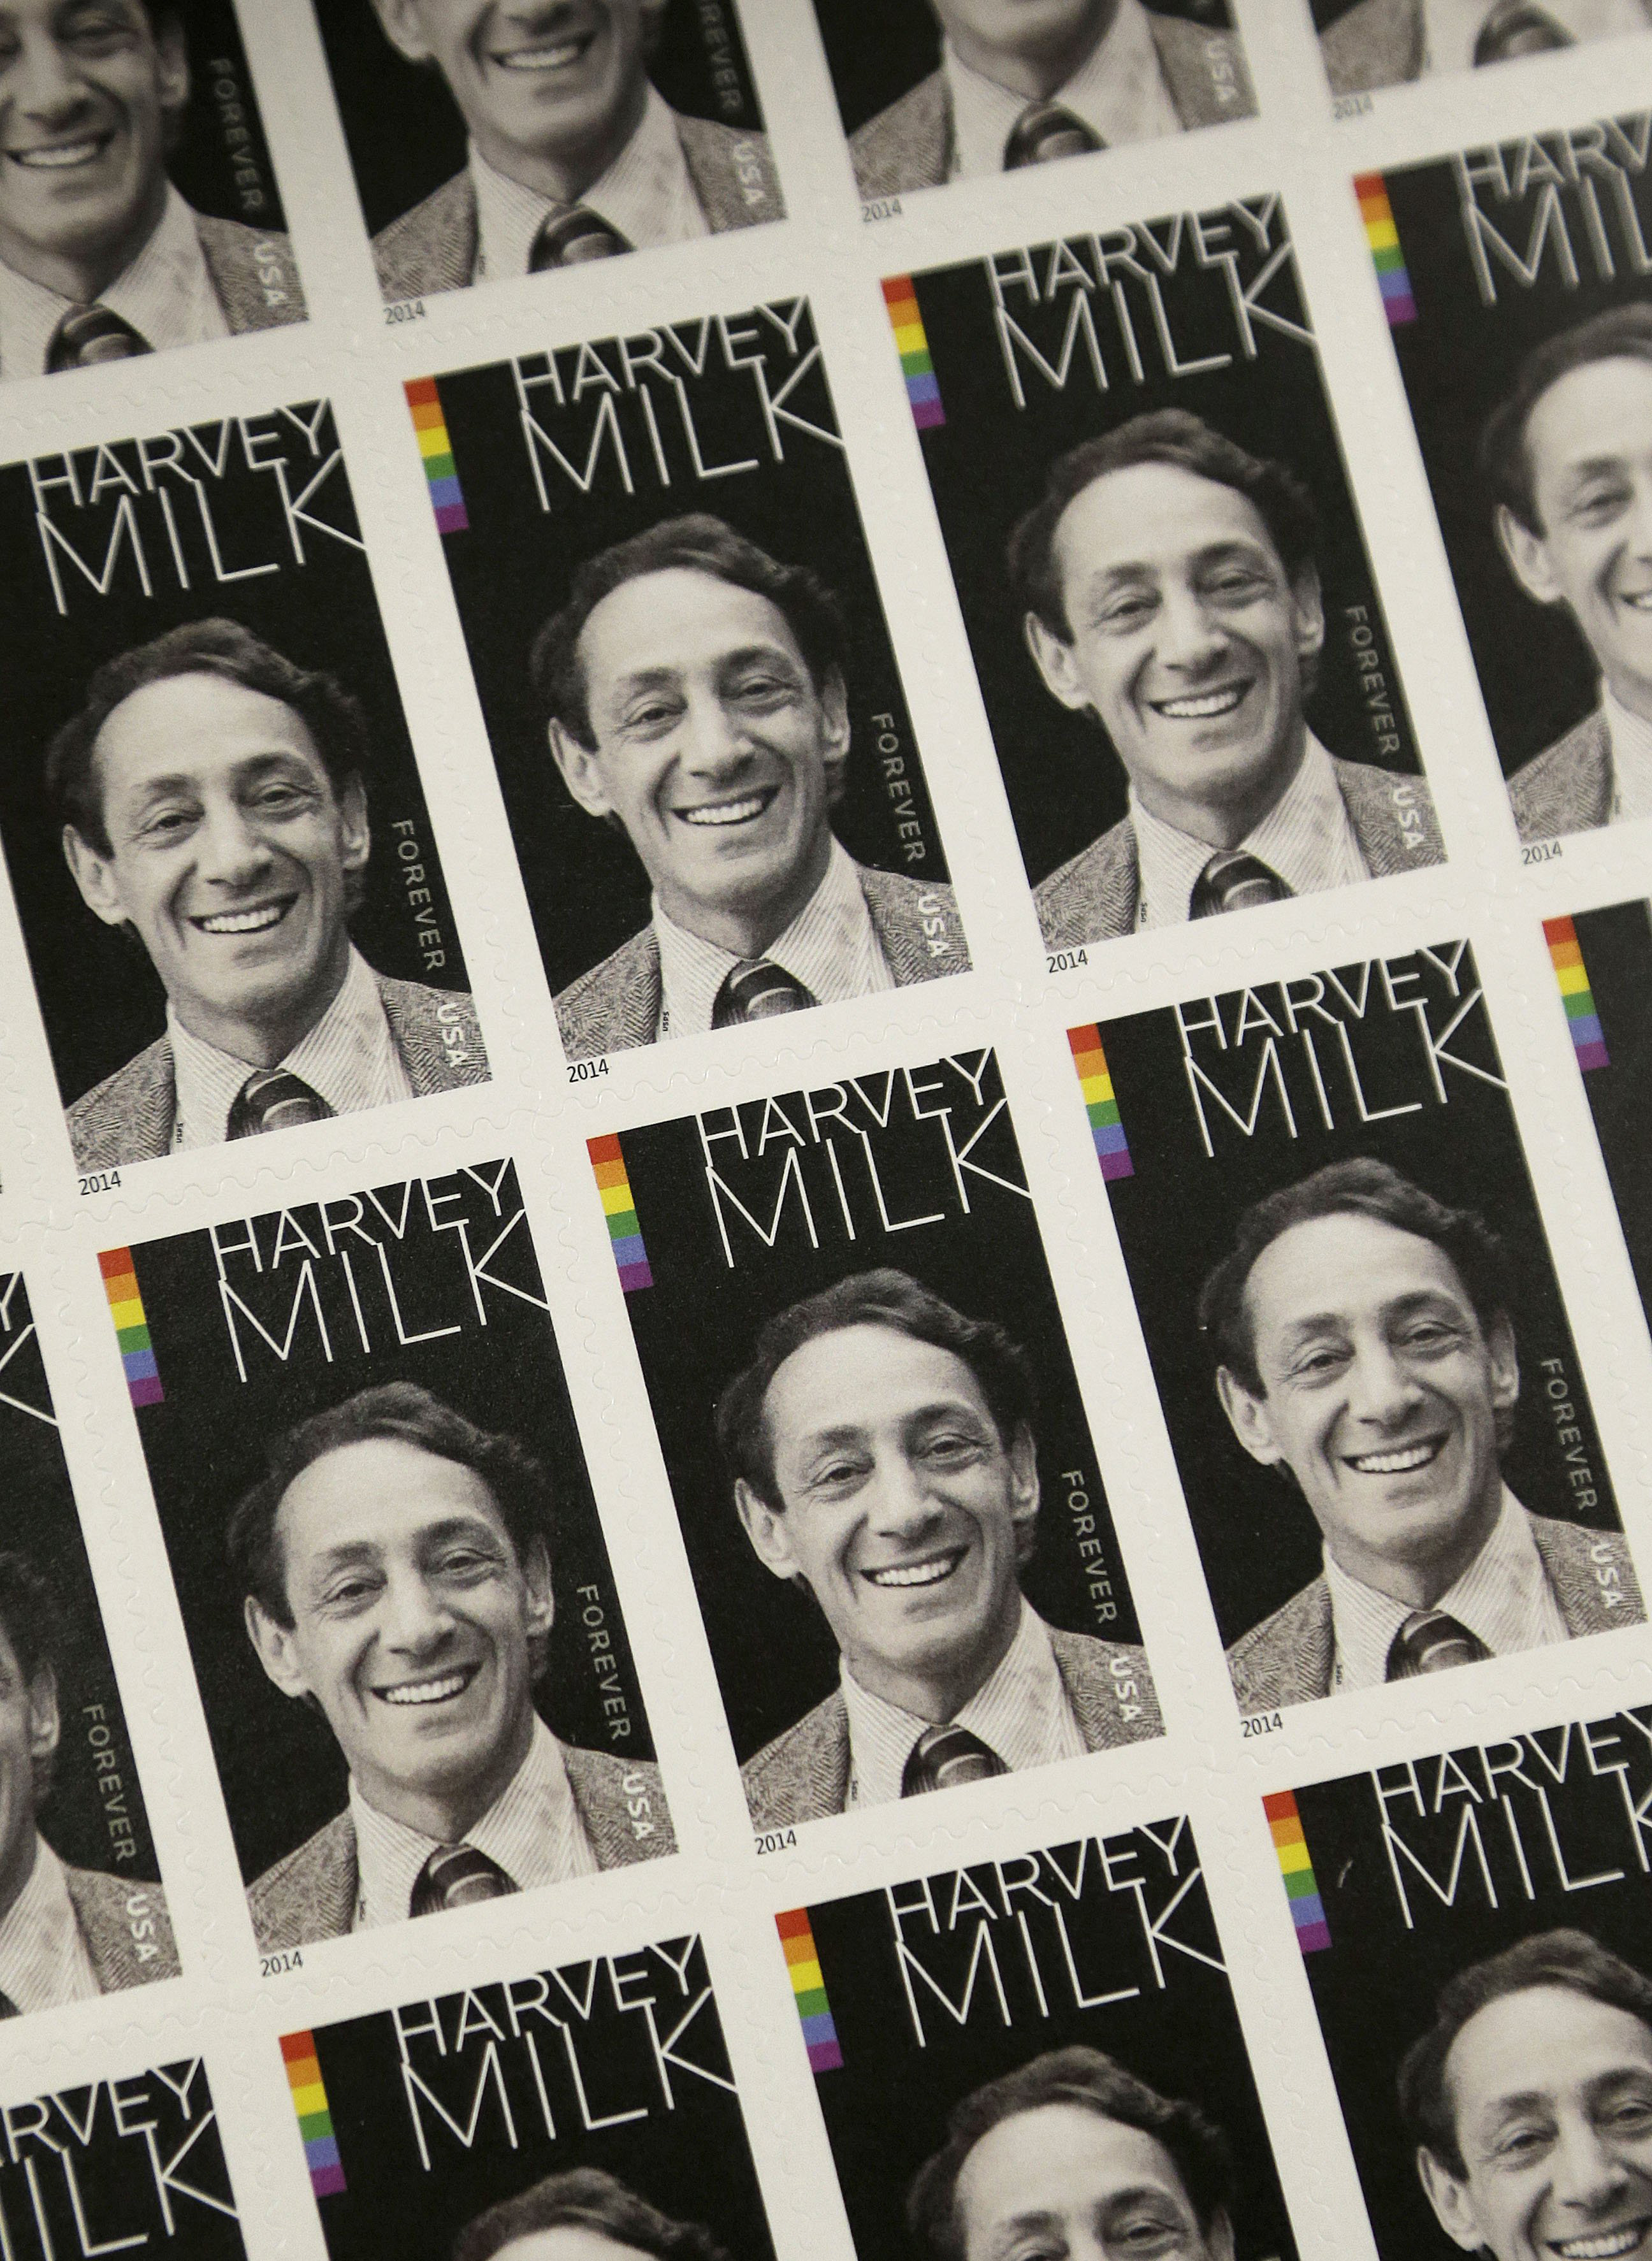 A sheet of commemorative stamps honoring Harvey Milk.